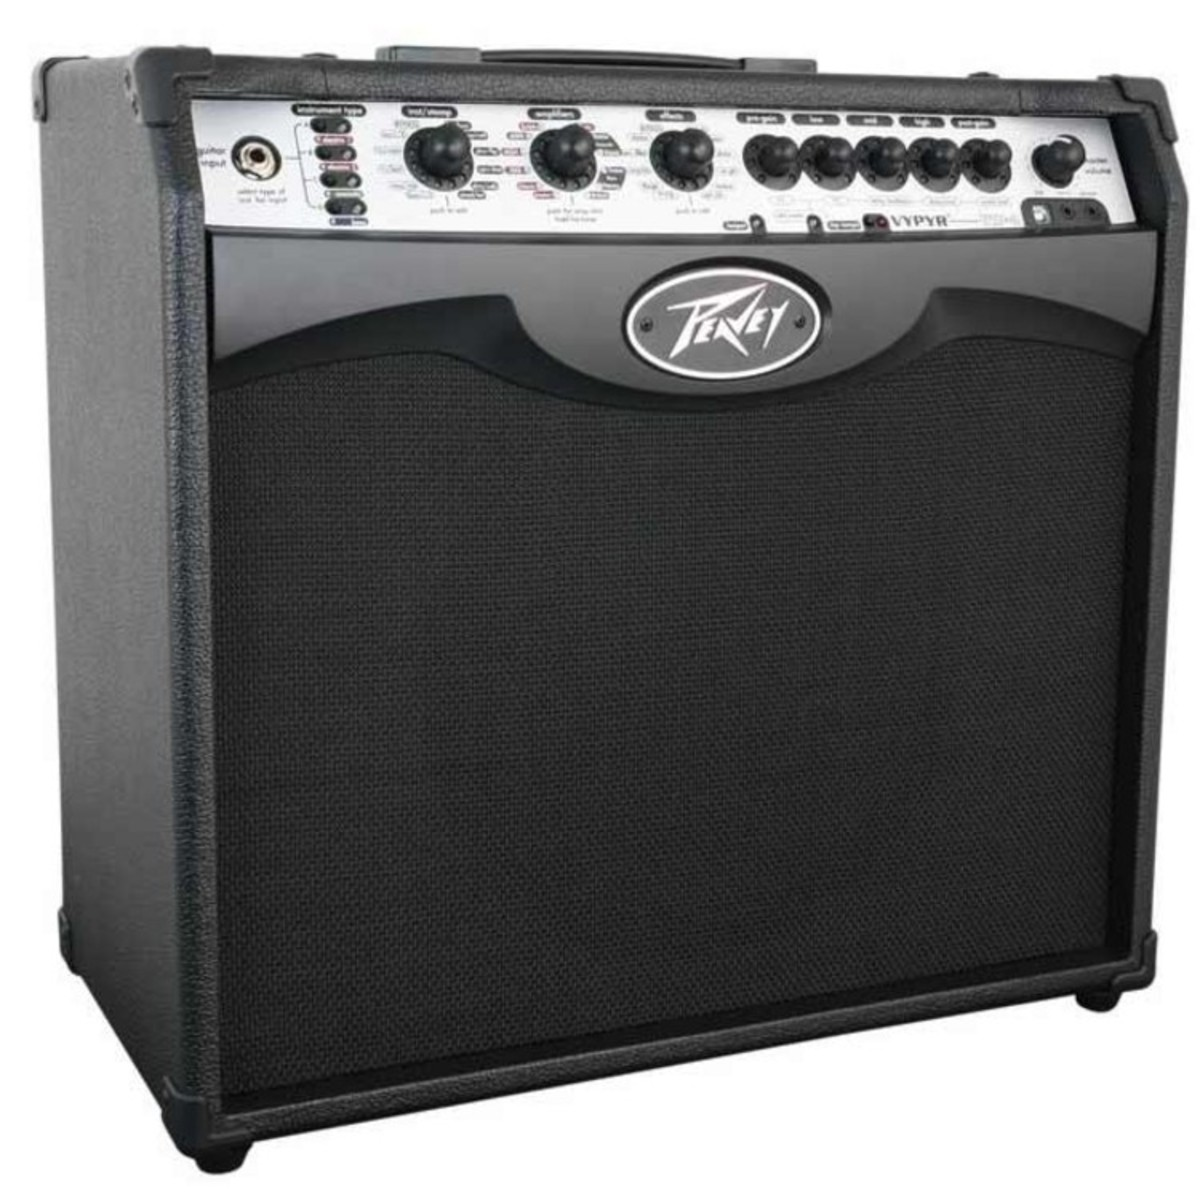 peavey vypyr vip 2 modelling combo amp ex demo at gear4music com peavey vypyr 30 user manual peavey vypyr 30 amp manual